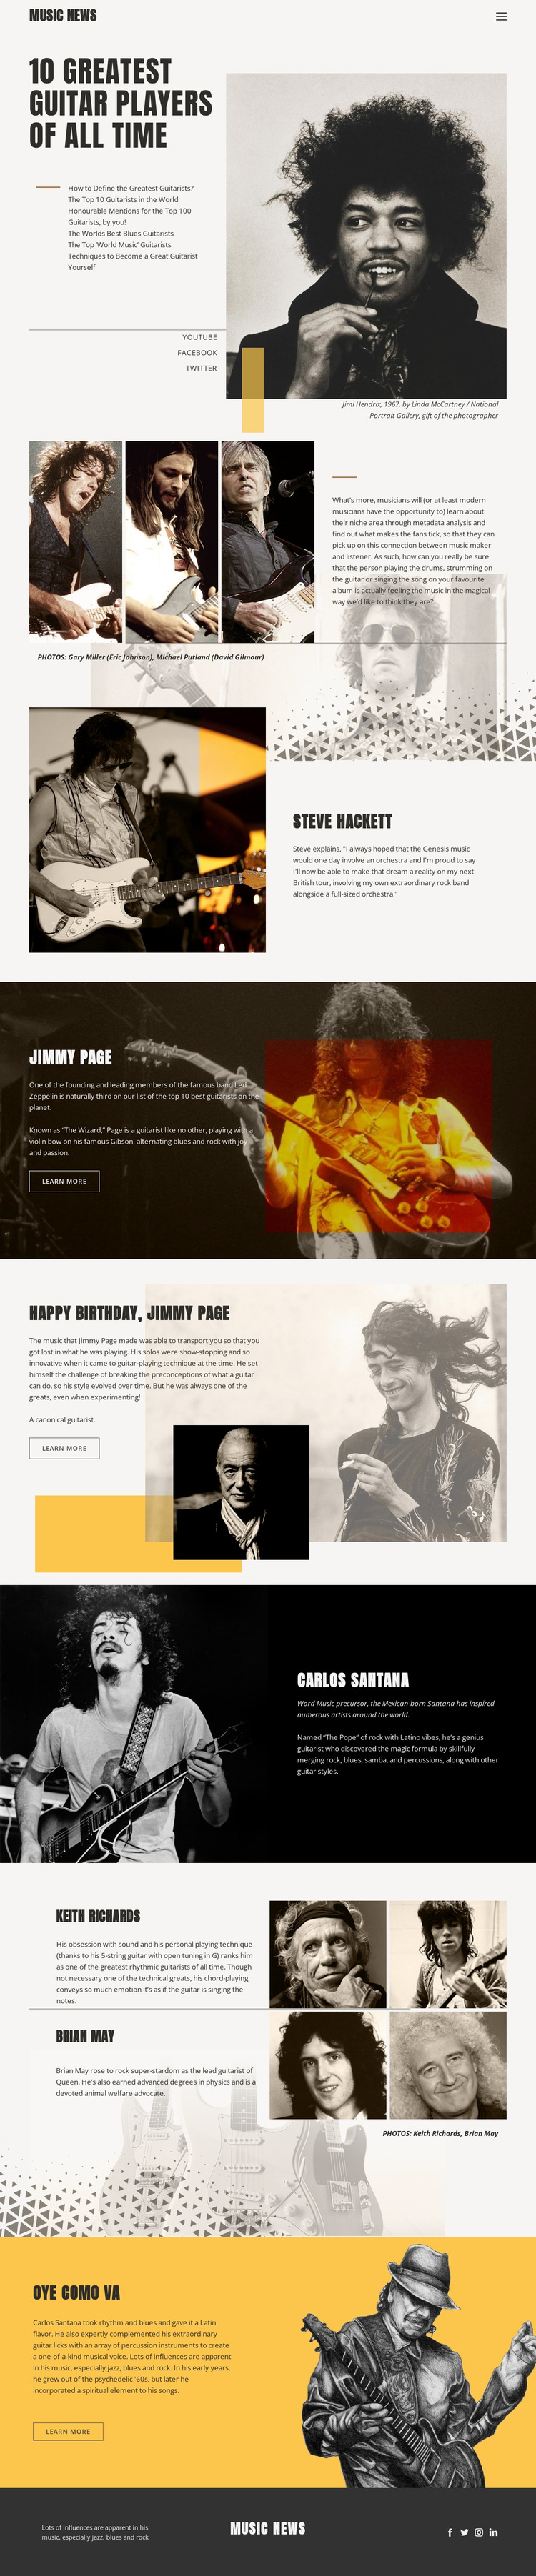 The Top Guitar Players HTML5 Template